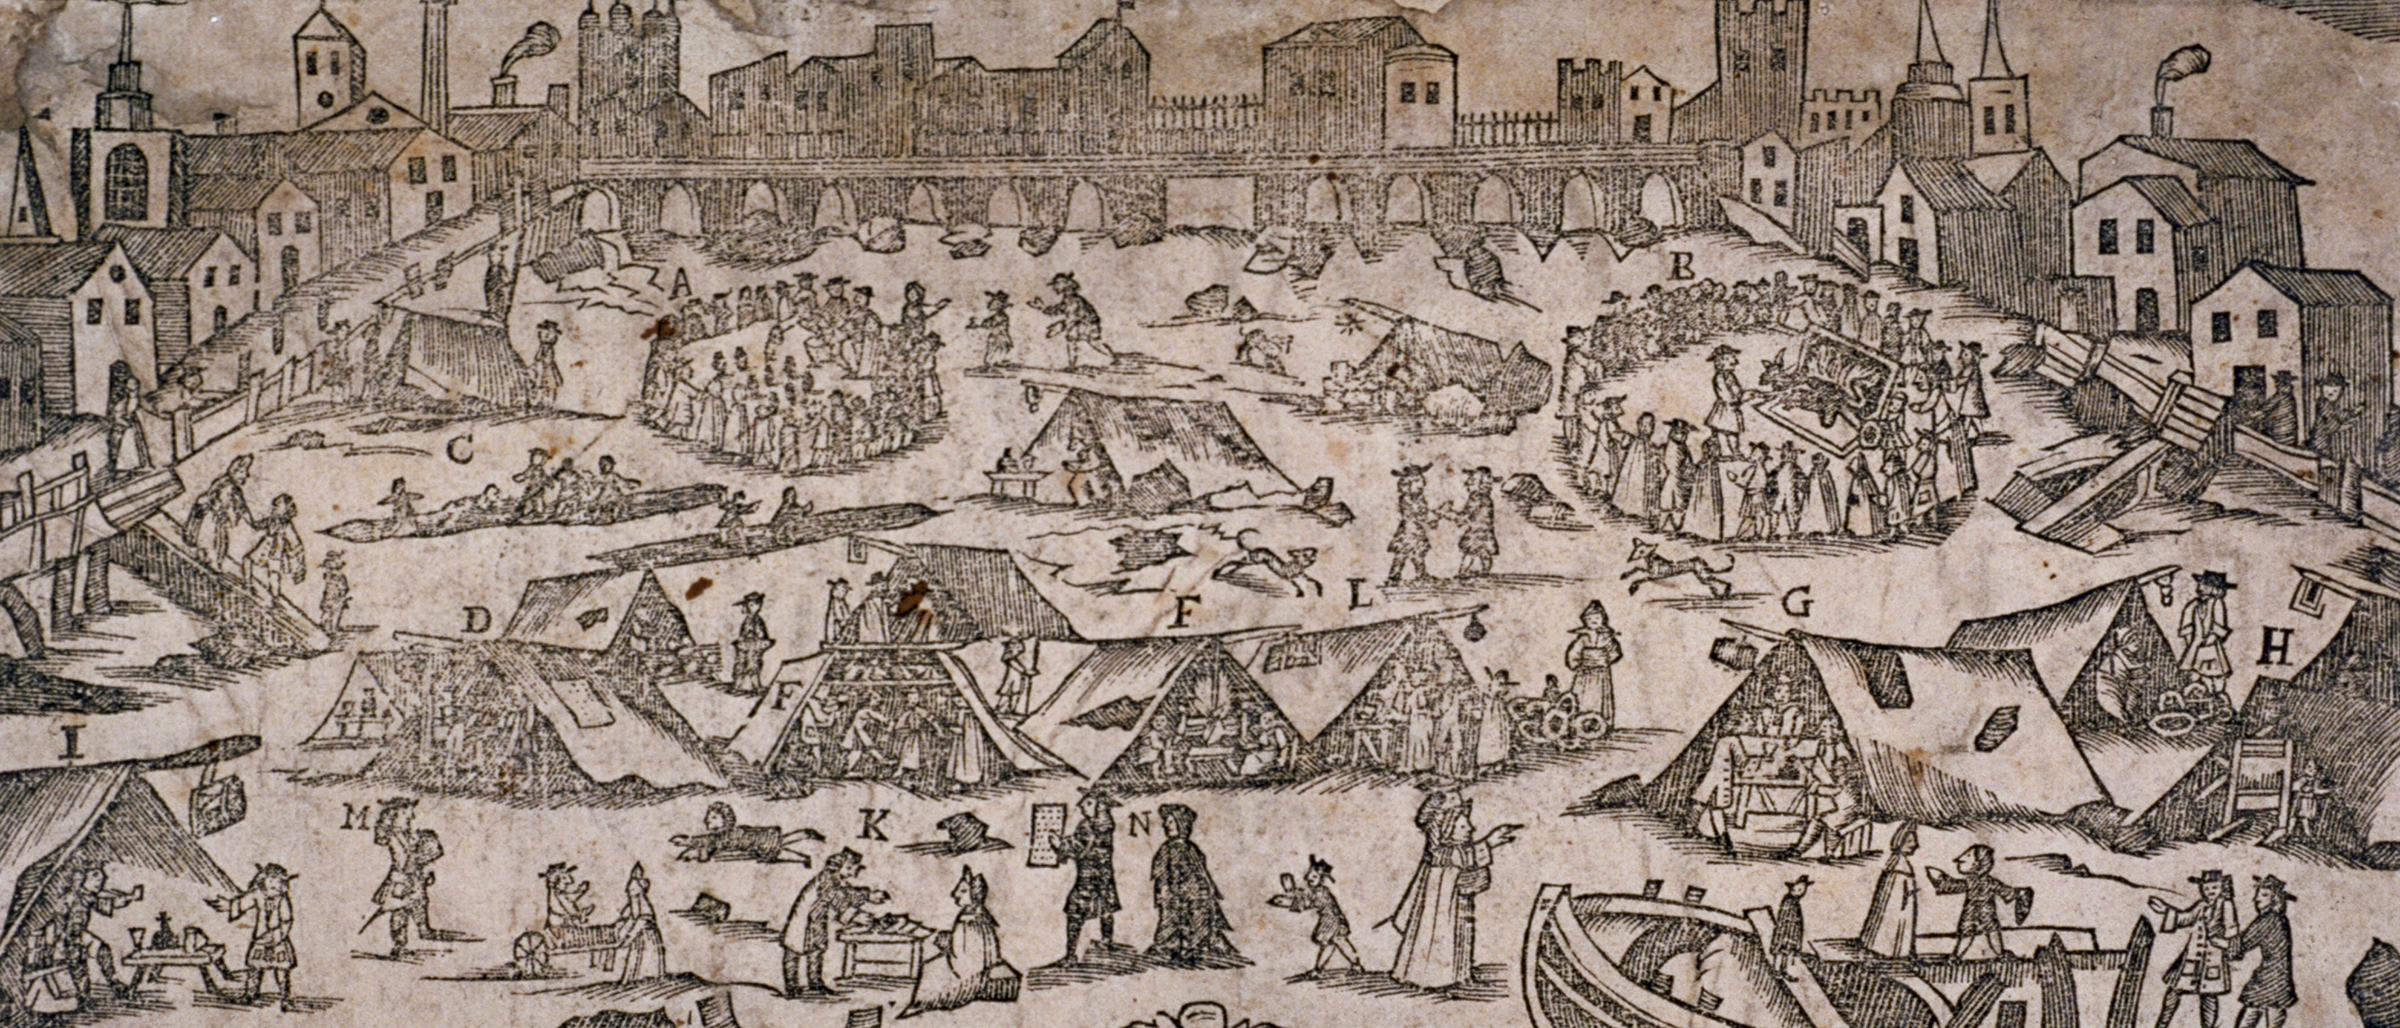 Frost fair on the River Thames, London, 1716. © HIP / Art Resource, NY.